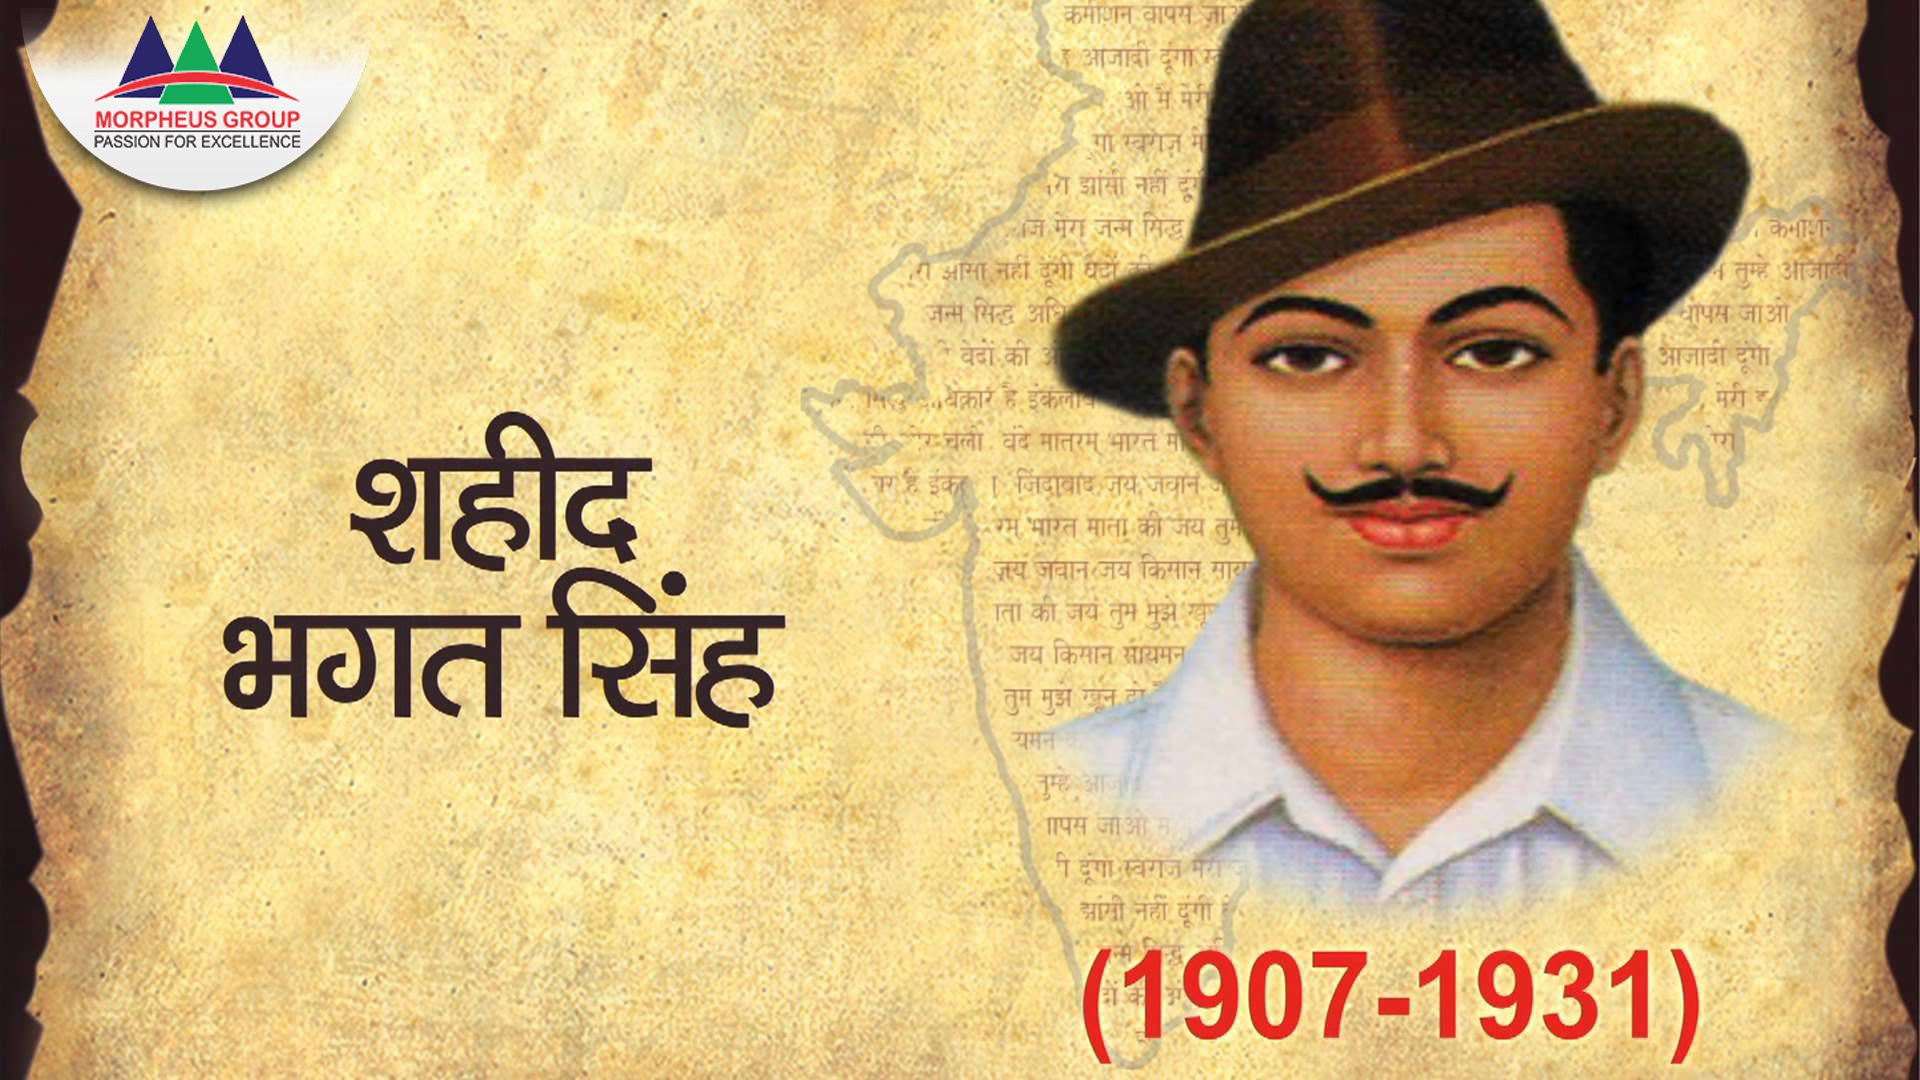 Morpheus Group pays tribute to Shaheed Bhagat Singh on his